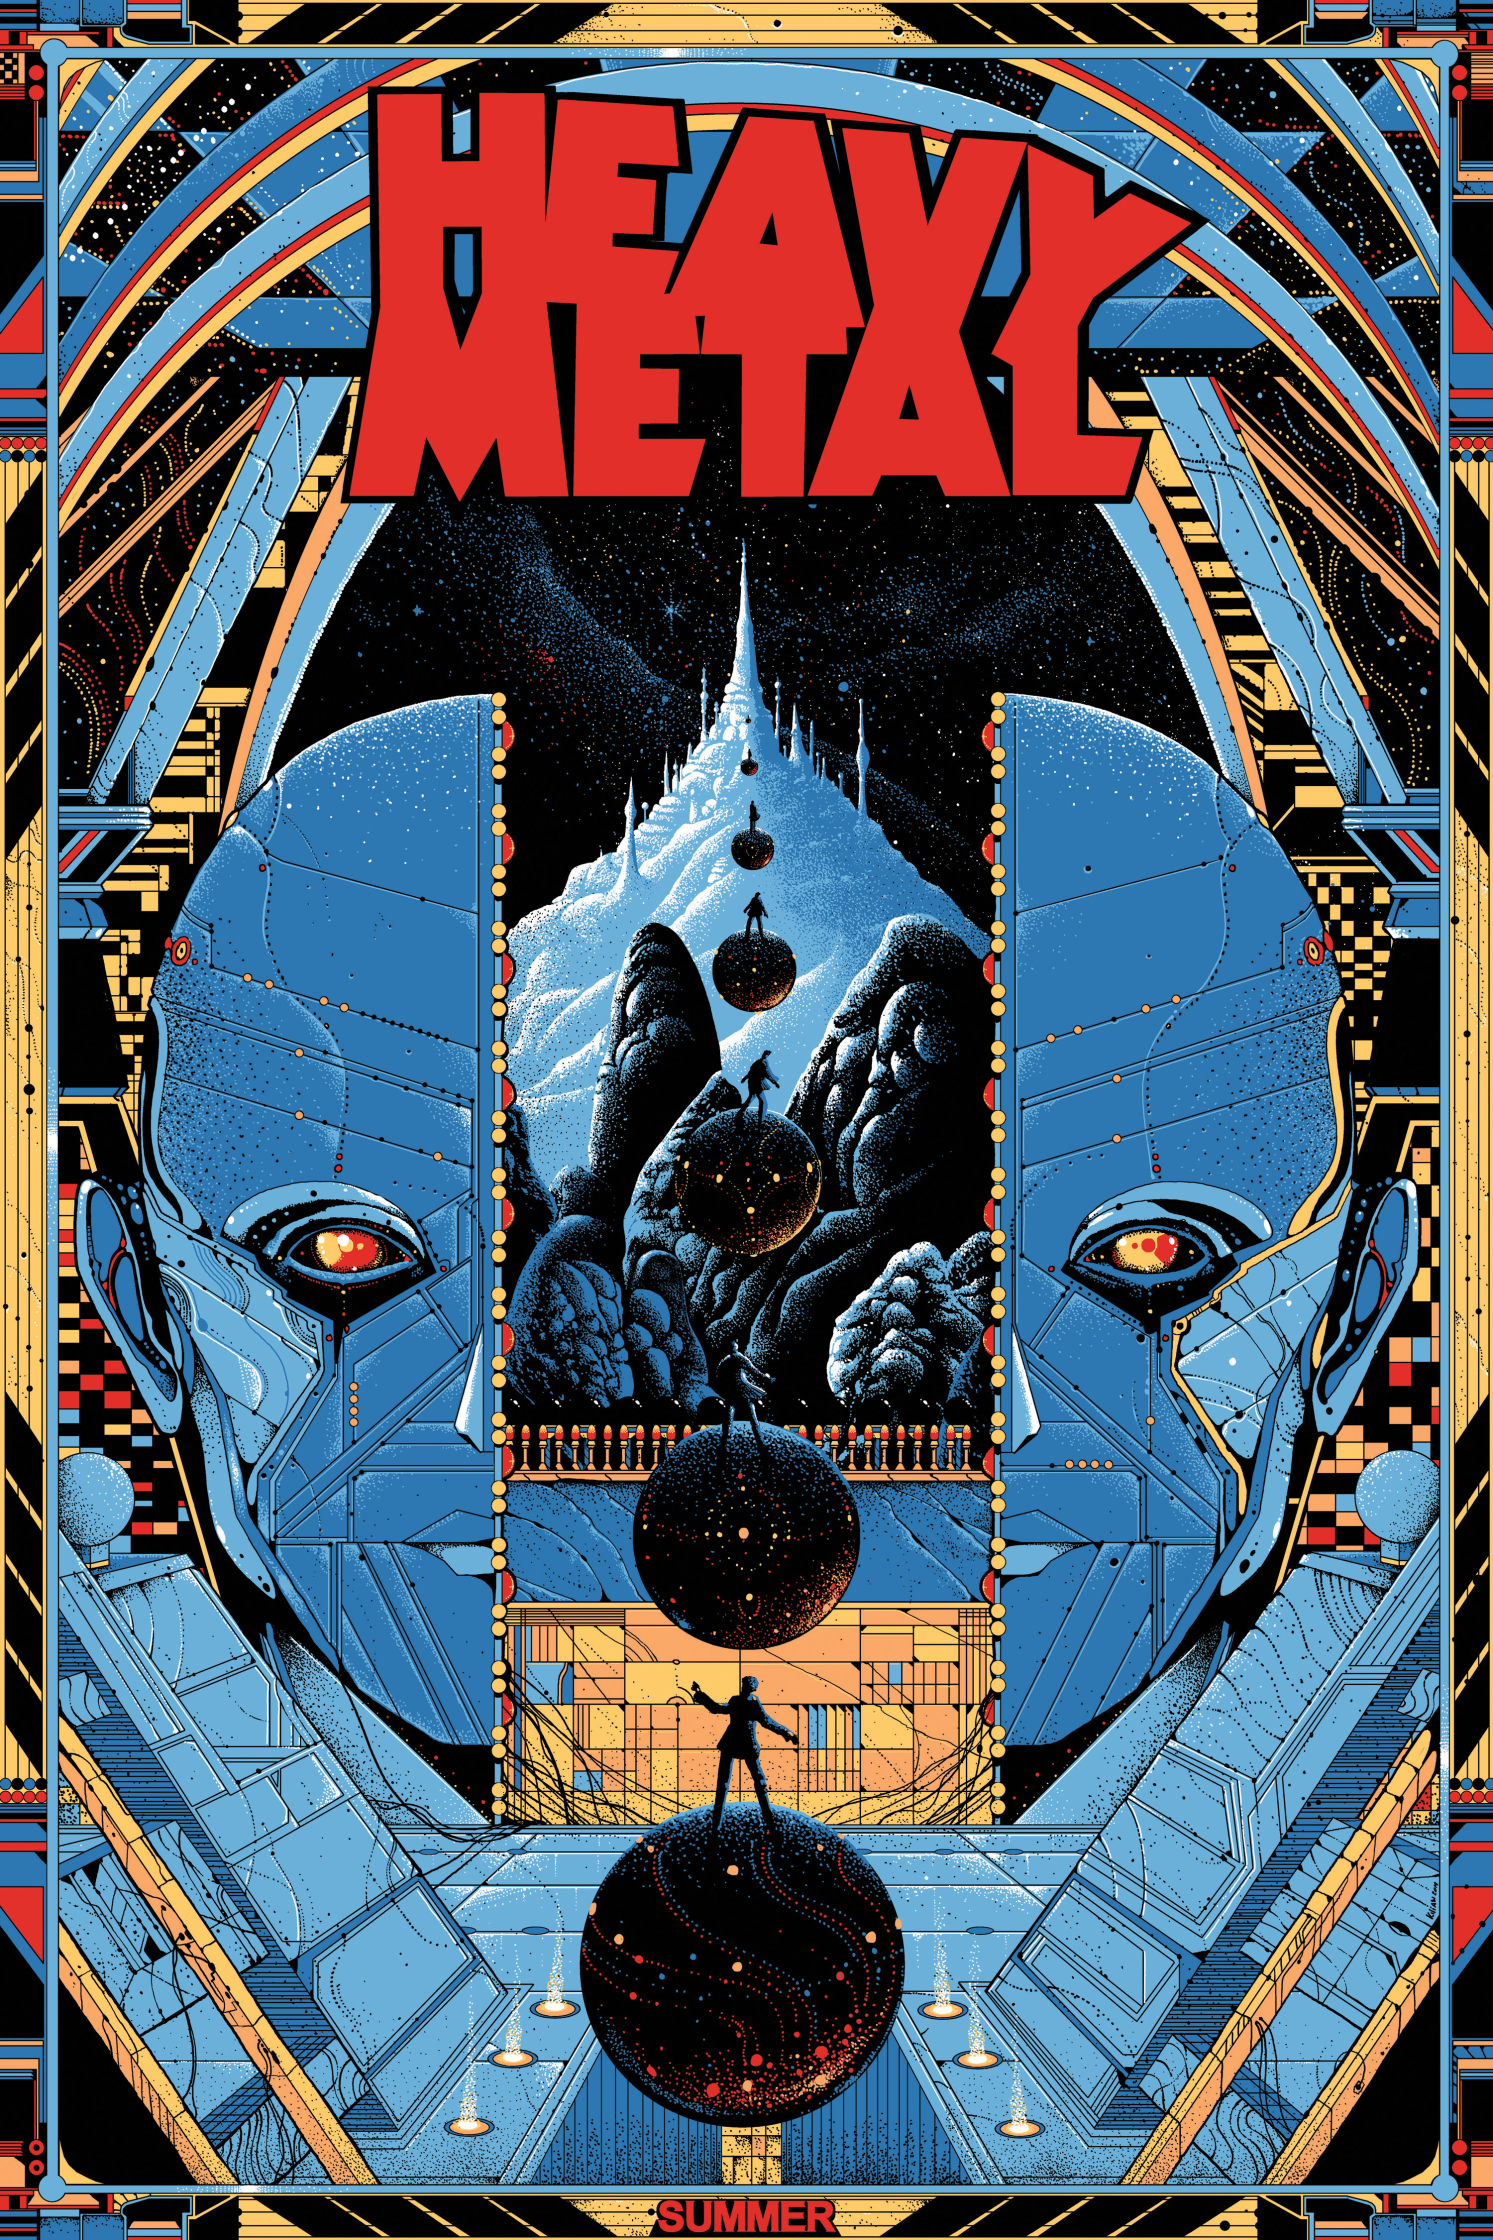 Mondo Heavy Metal Magazine Promo Screenprint Poster